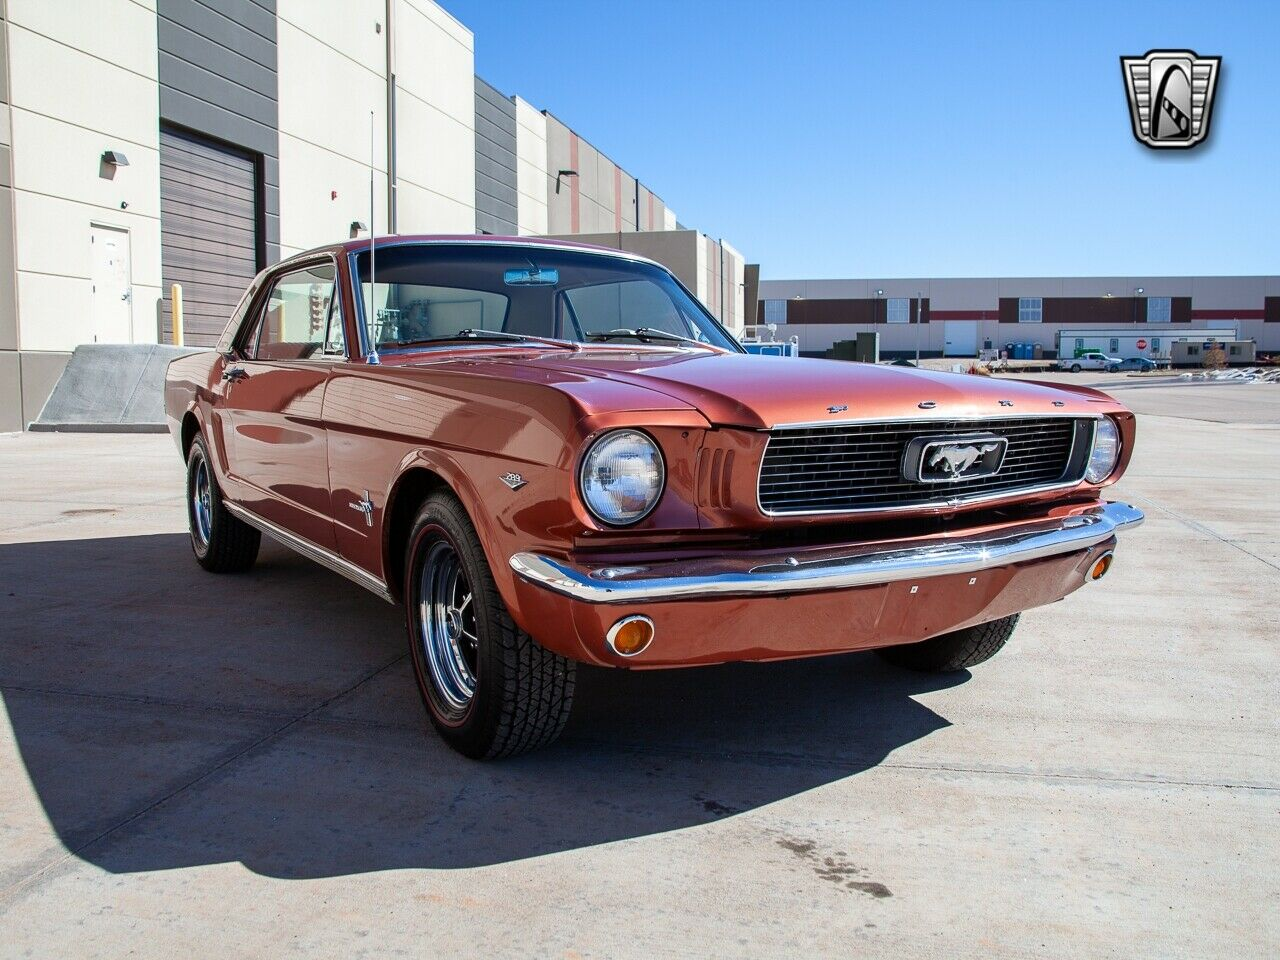 Ford Mustang 1966 photo 8